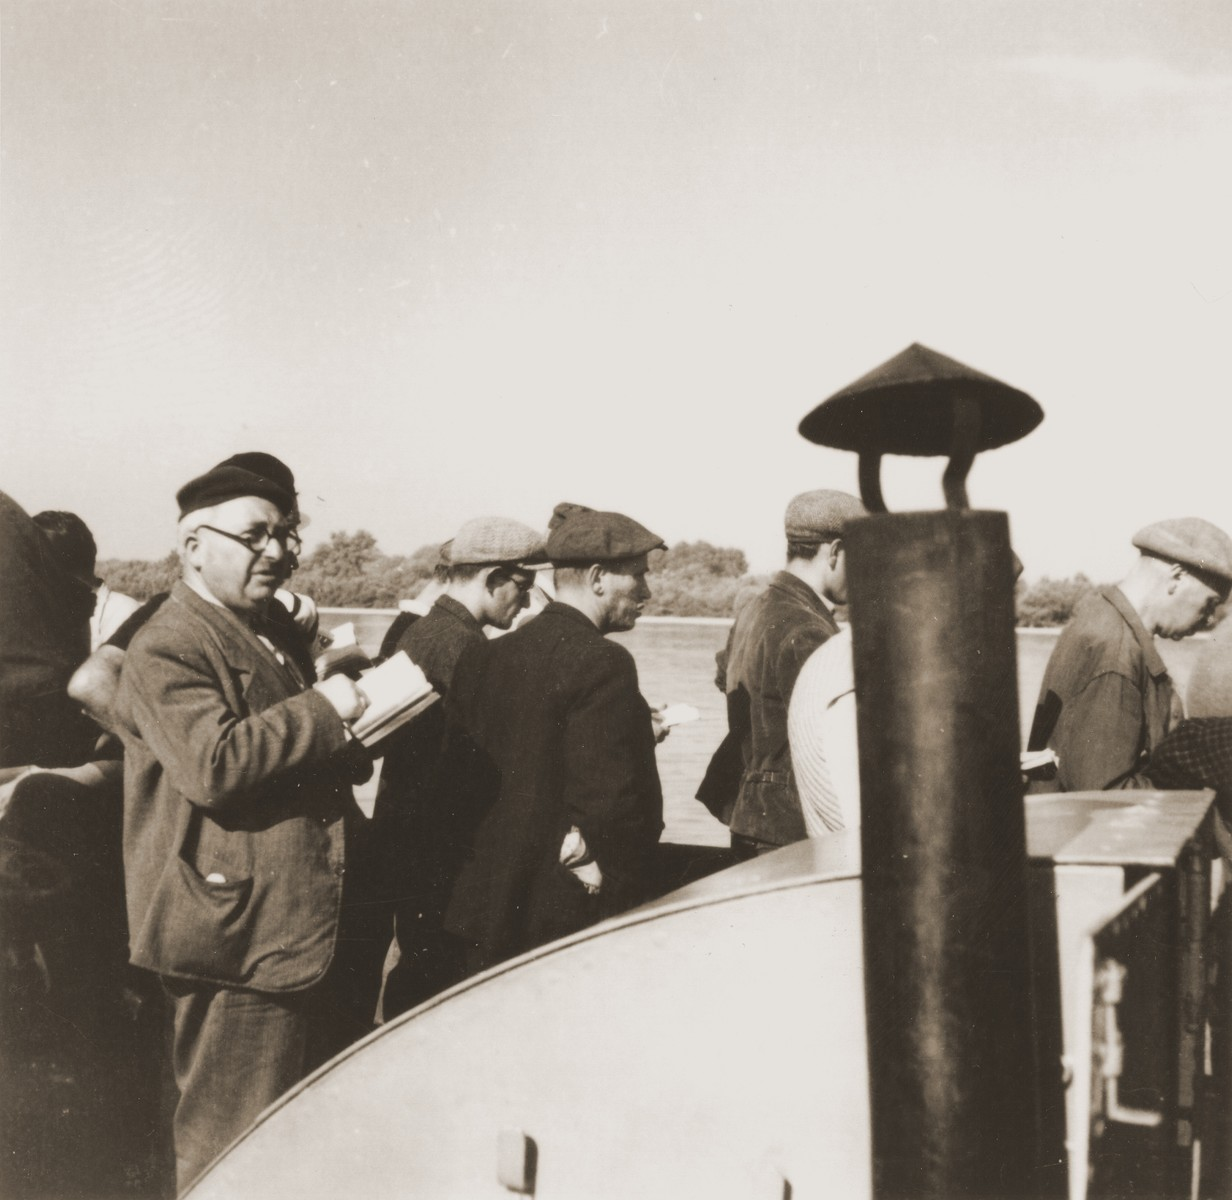 Jewish refugees from the Kladovo transport participate in a morning prayer service on the deck of a riverboat travelling from Kladovo to Sabac.